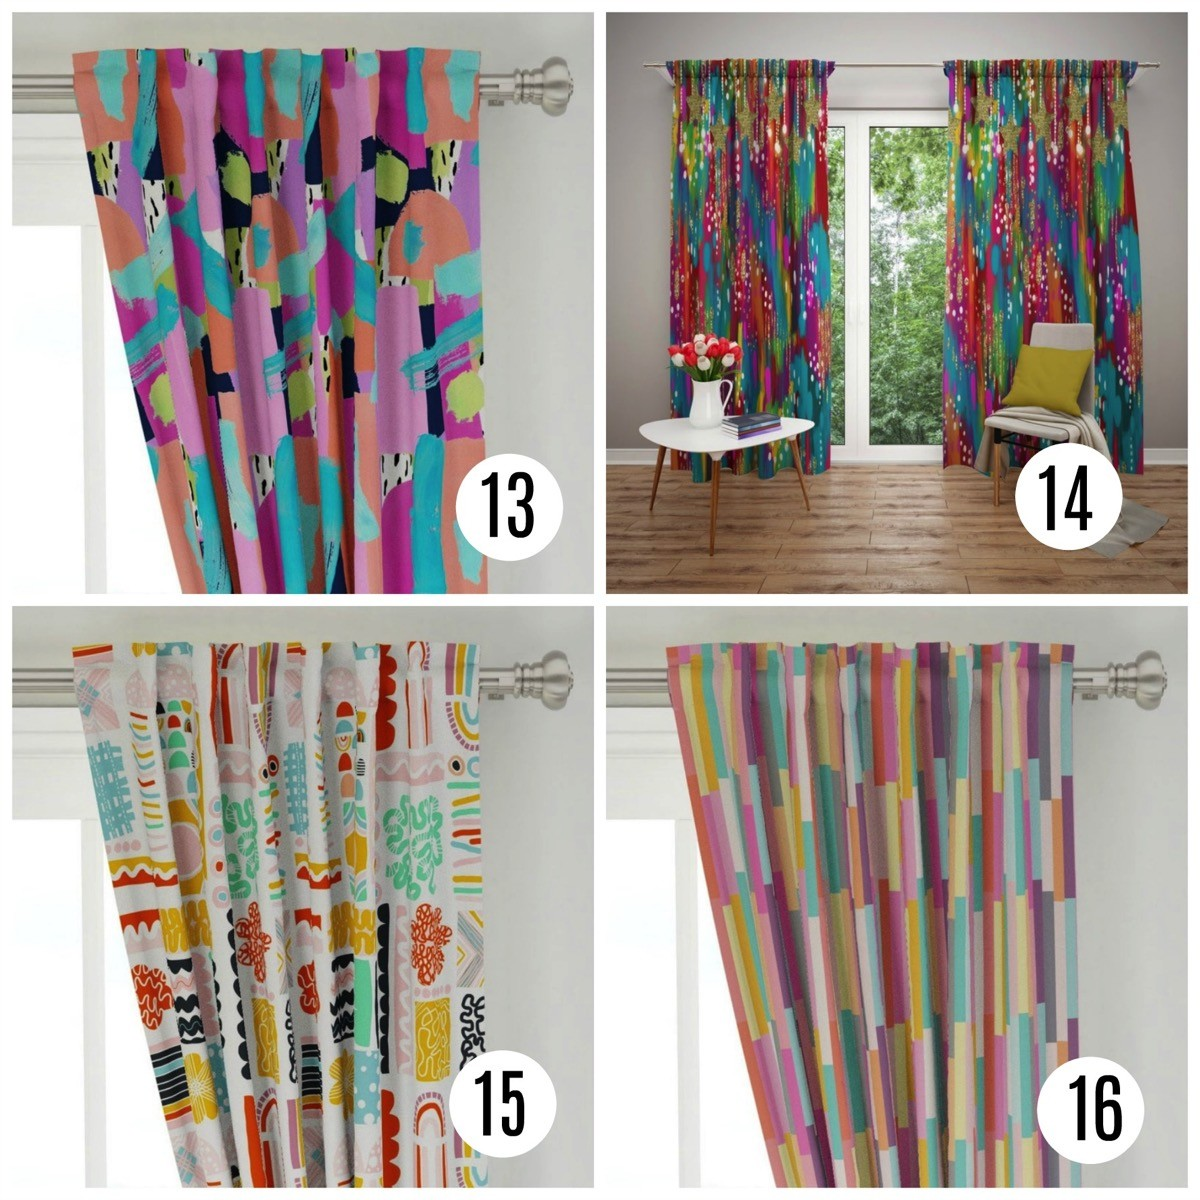 Colorful window curtains painted